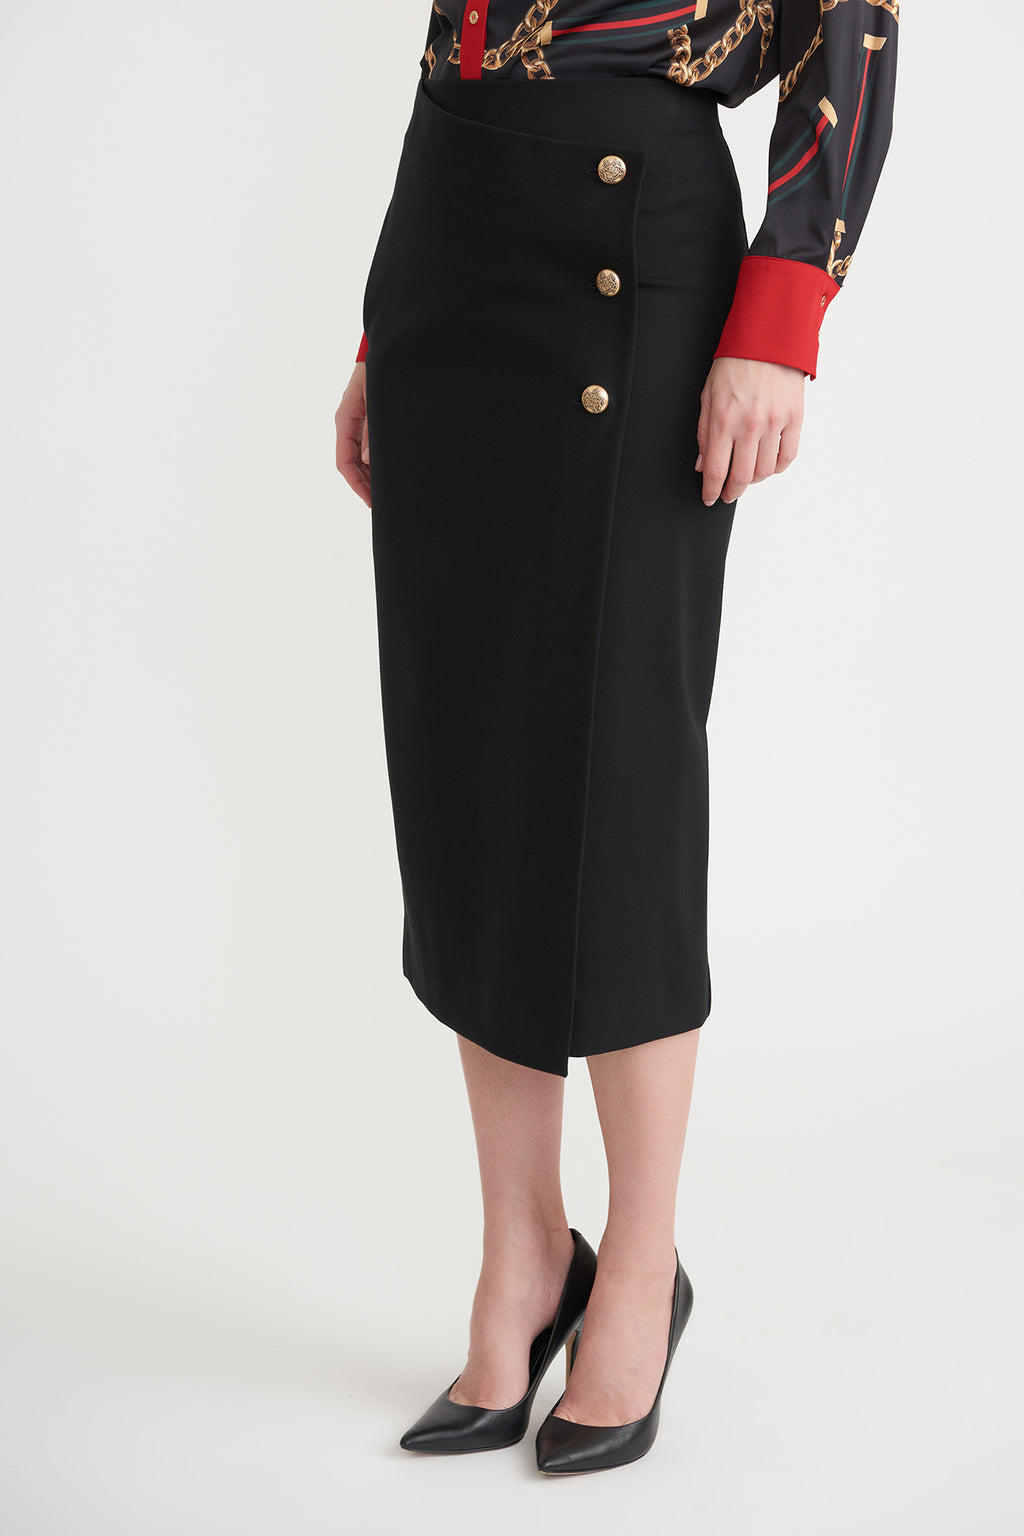 Pencil Skirt With 3 Gold Buttons